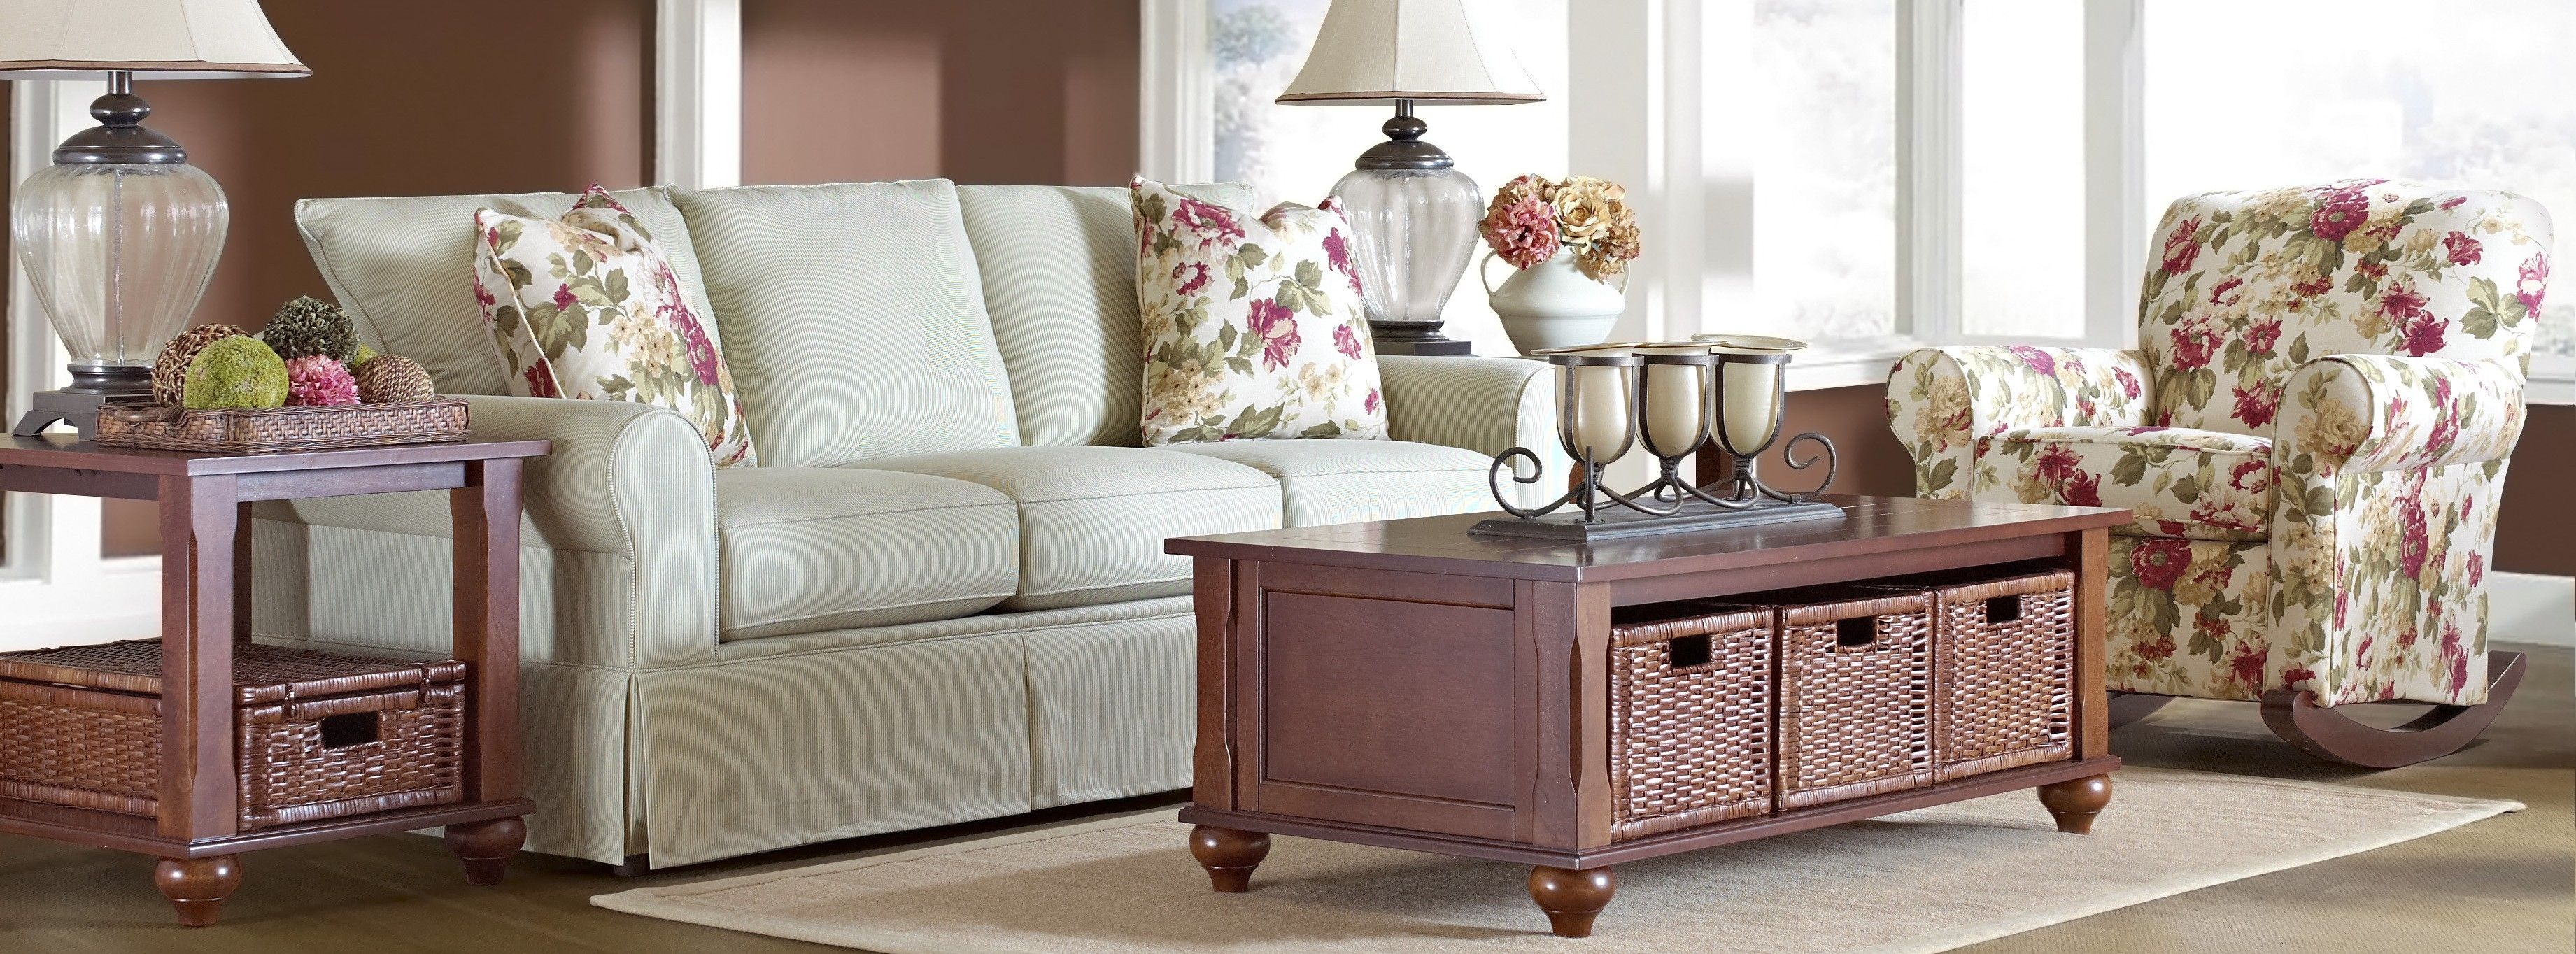 Home Page Inside Ashbrook Furniture 31856 Wallpaper Furniture Hd